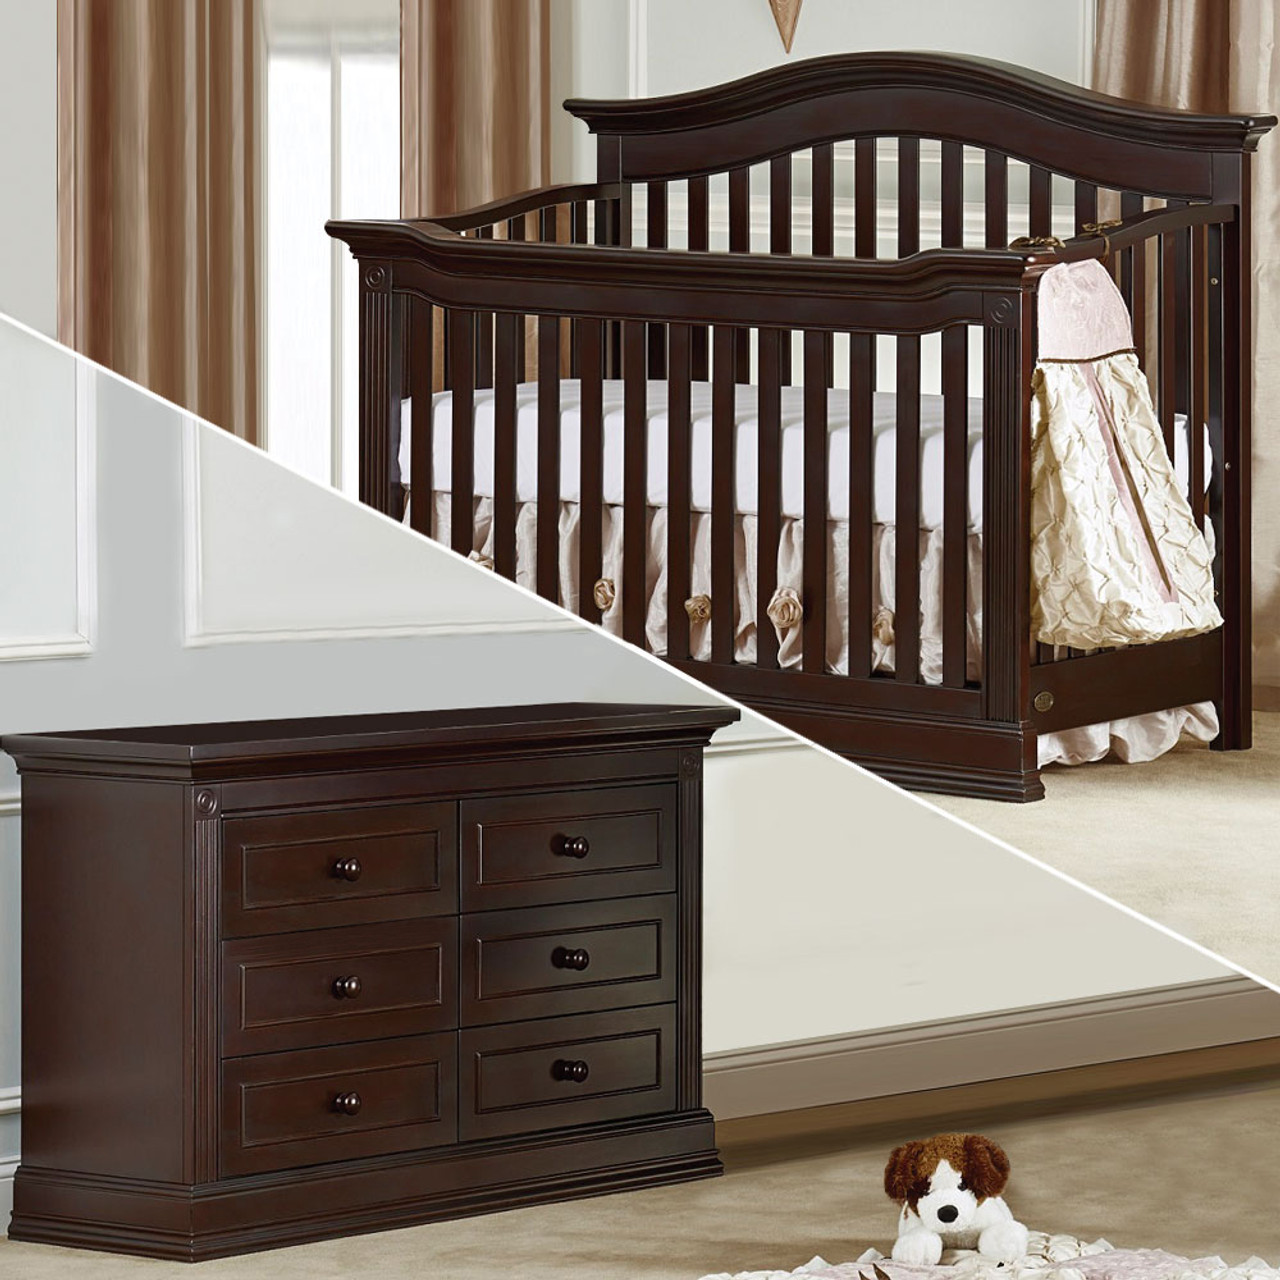 Like regular dressers, nursery dressers give you space to hold your baby's clothing and other belongings. baby cache by heritage montana 2 piece nursery set in espresso 6dr dresser and crib